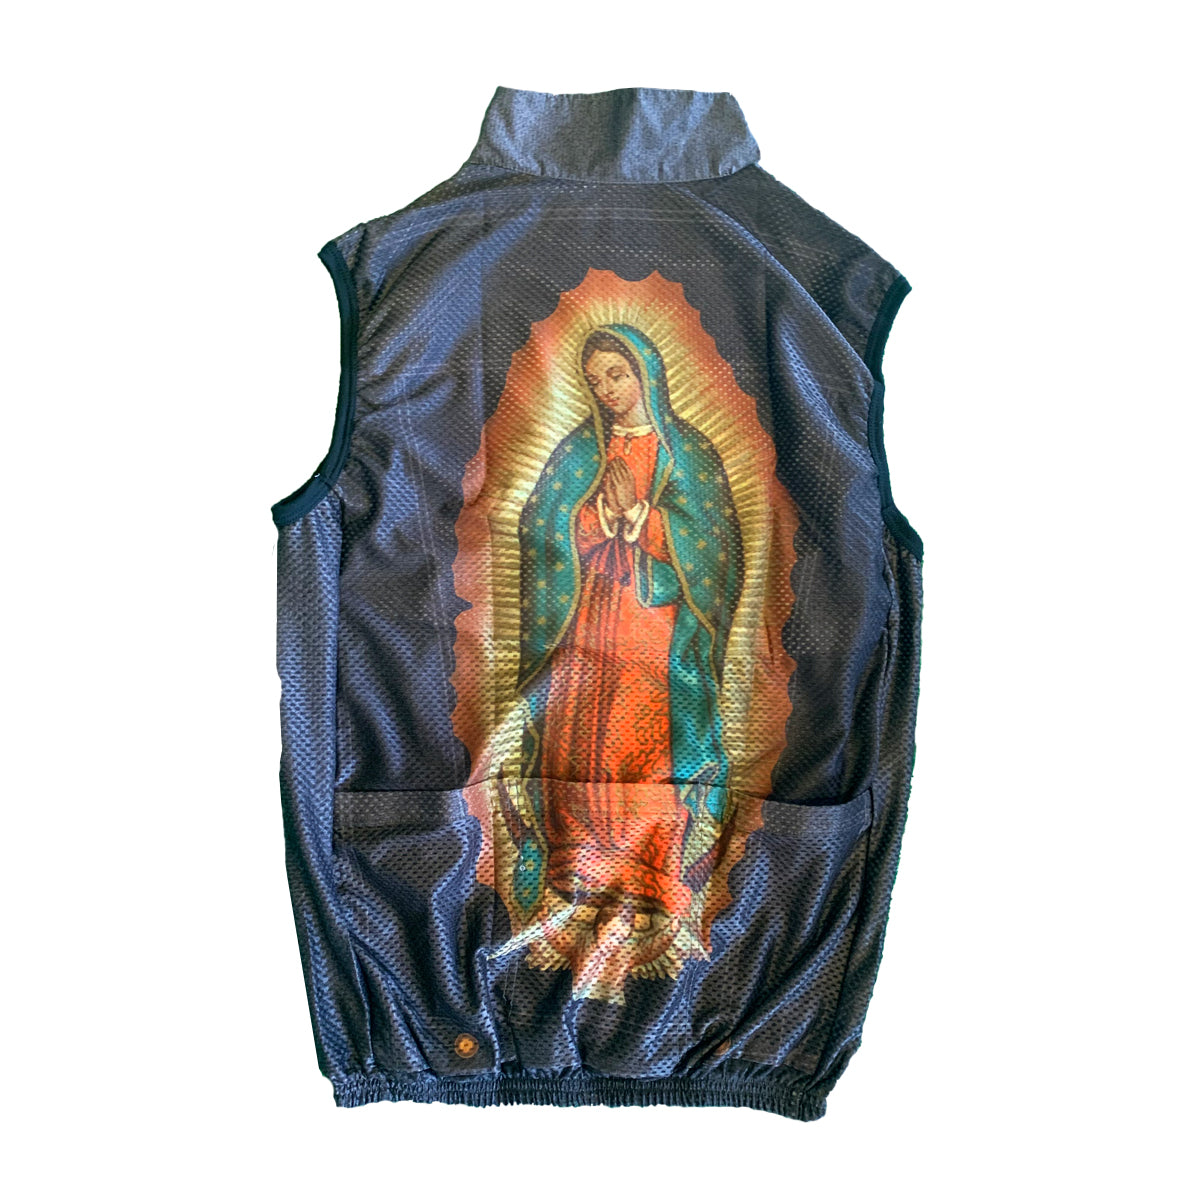 Our Lady Vest - Black